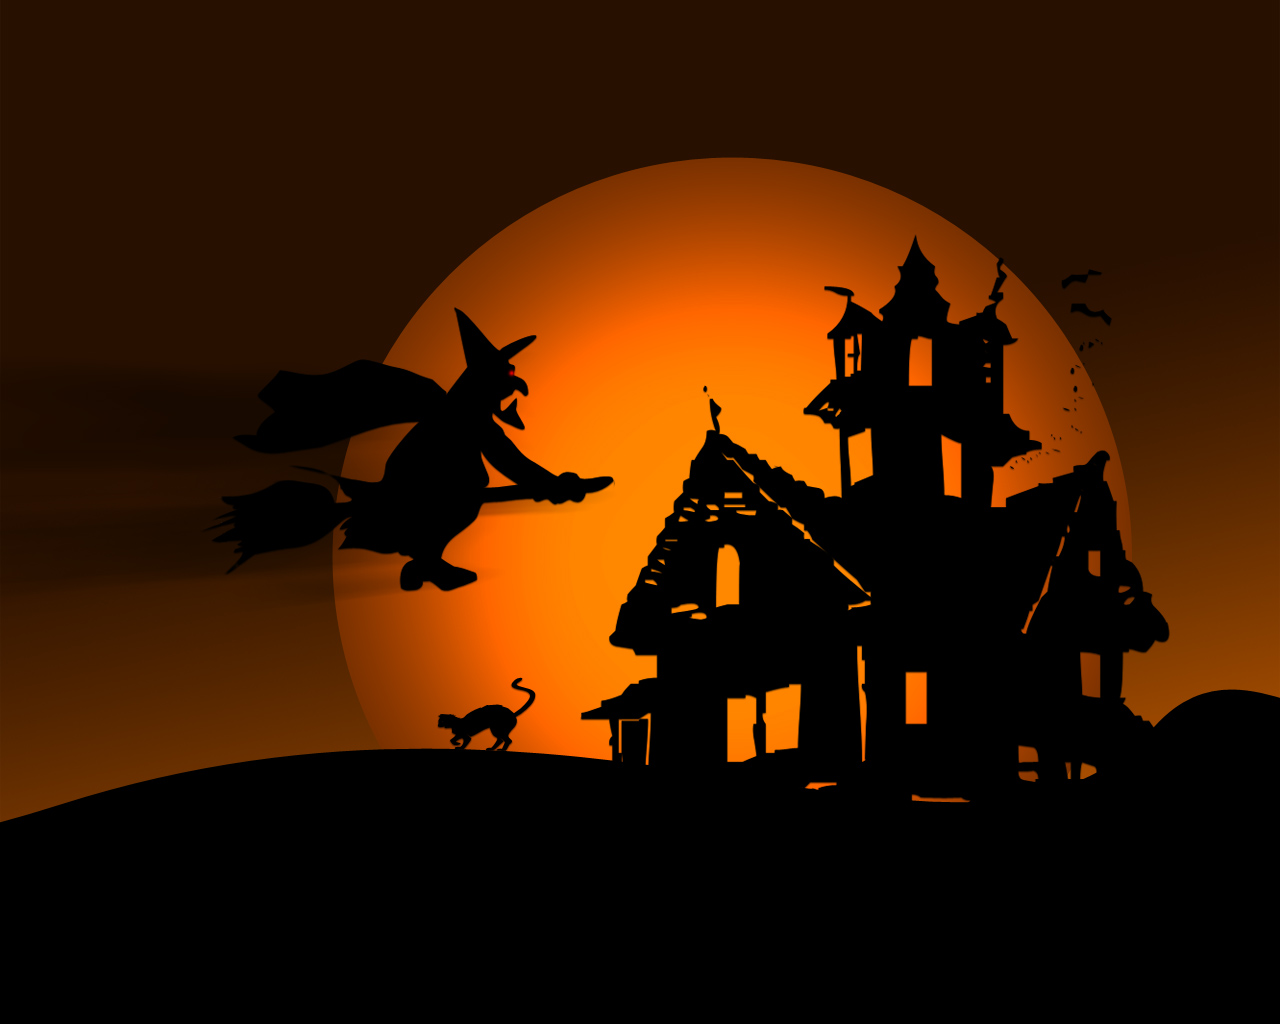 http://4.bp.blogspot.com/-2NYKVV76oRM/TnkKi650_SI/AAAAAAAACCw/FIWk7ZhzBao/s1600/halloween+wallpaper+backgrounds+3.jpg